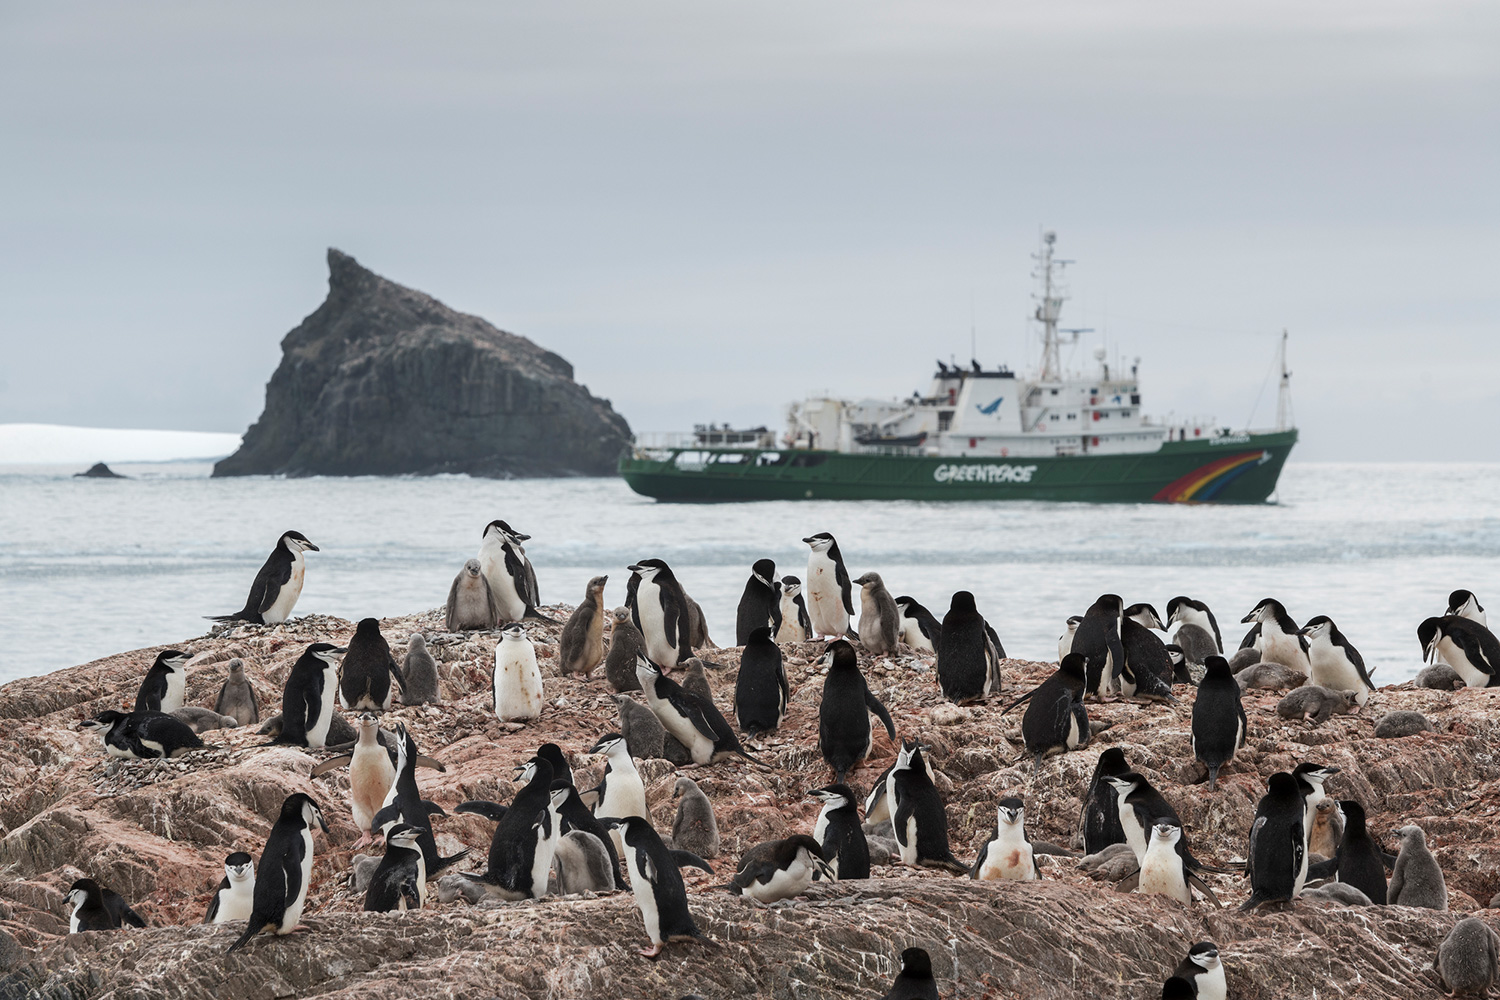 A Chinstrap penguin colony on Elephant Island and Greenpeace ship the Esperanza in the background. Greenpeace is in the Antarctic to investigate the impacts of the climate crisis as part of the Protect the Oceans Expedition, a year long pole to pole ship tour, campaigning for the establishment of ocean sanctuaries to safeguard this frozen region and its penguins, seals and whales, and to help address the climate emergency. (This picture was taken in 2020 during the Antarctic leg of the Pole to Pole expedition under the Dutch permit number RWS-2019/40813)